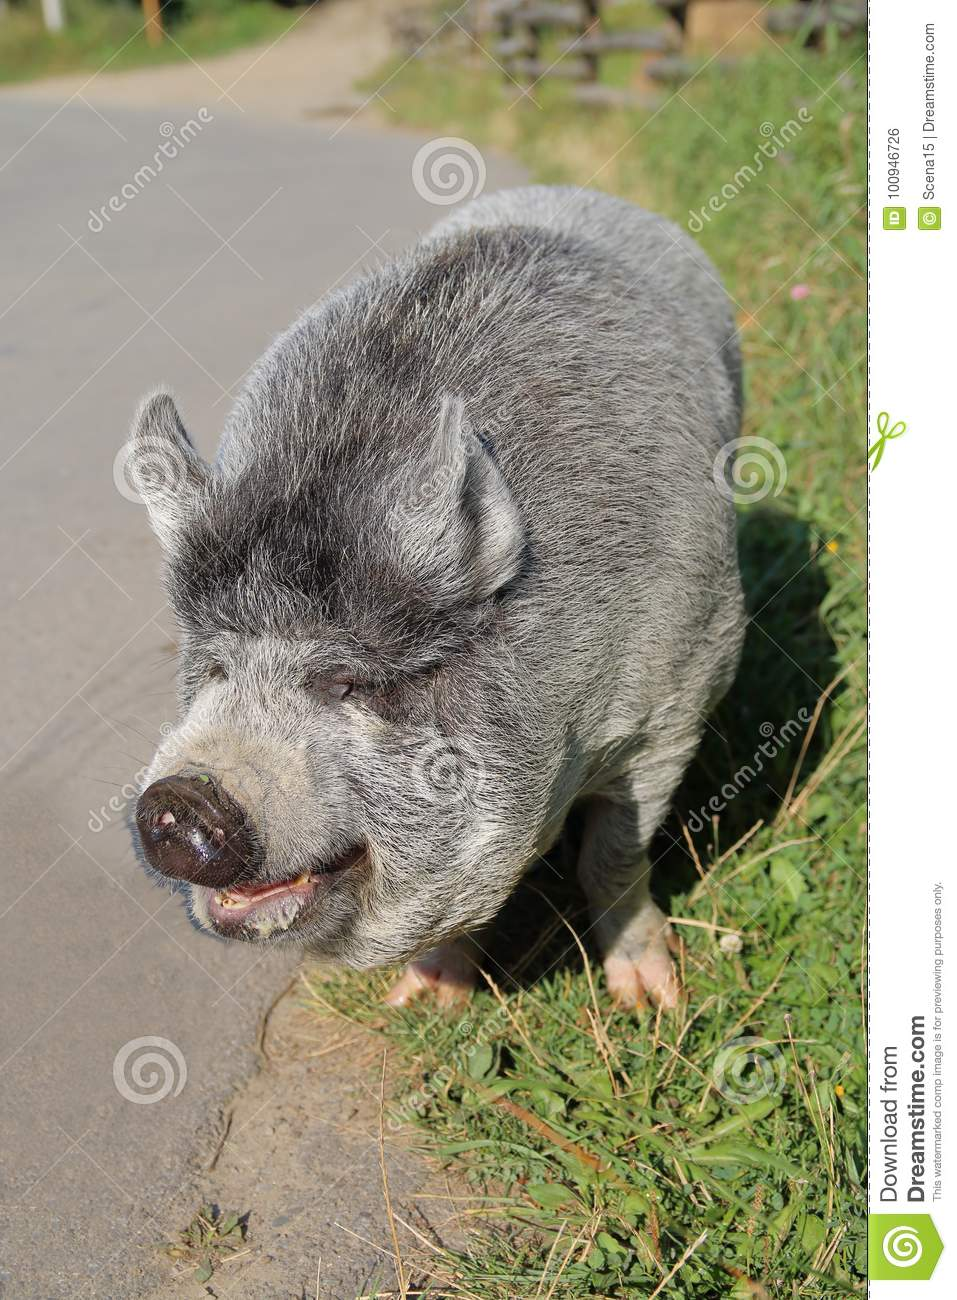 Funny gray-haired piglet.